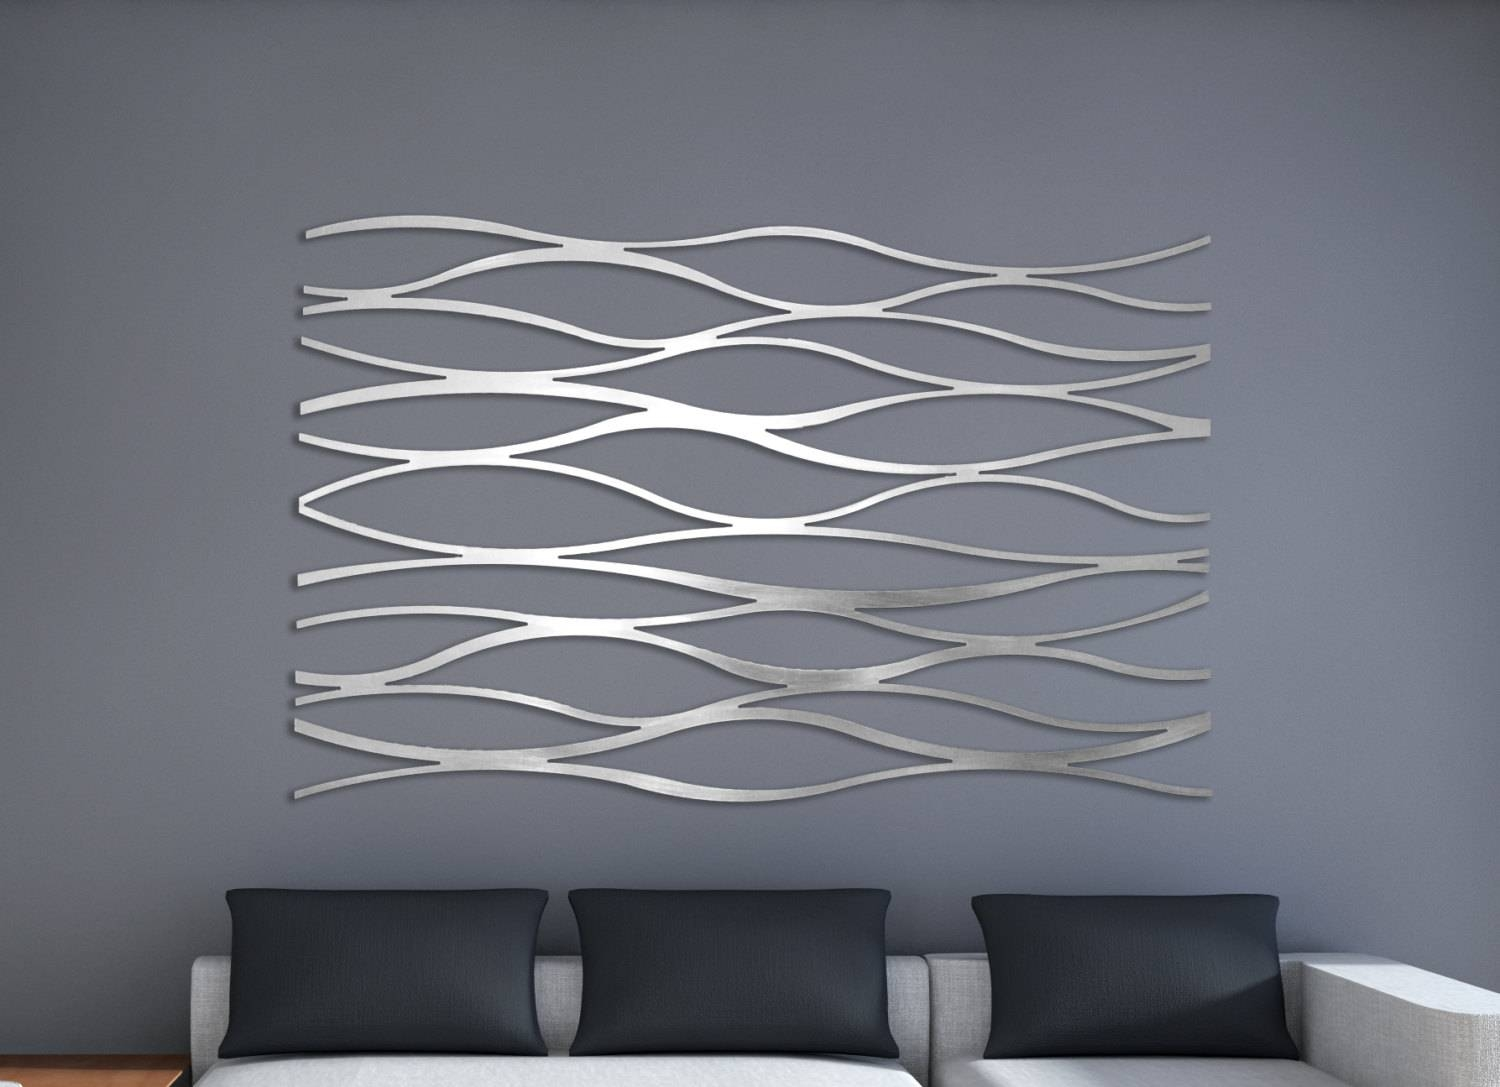 Laser Cut Metal Decorative Wall Art Panel Sculpture For Home Throughout Most Current Laser Cut Metal Wall Art (Gallery 9 of 20)